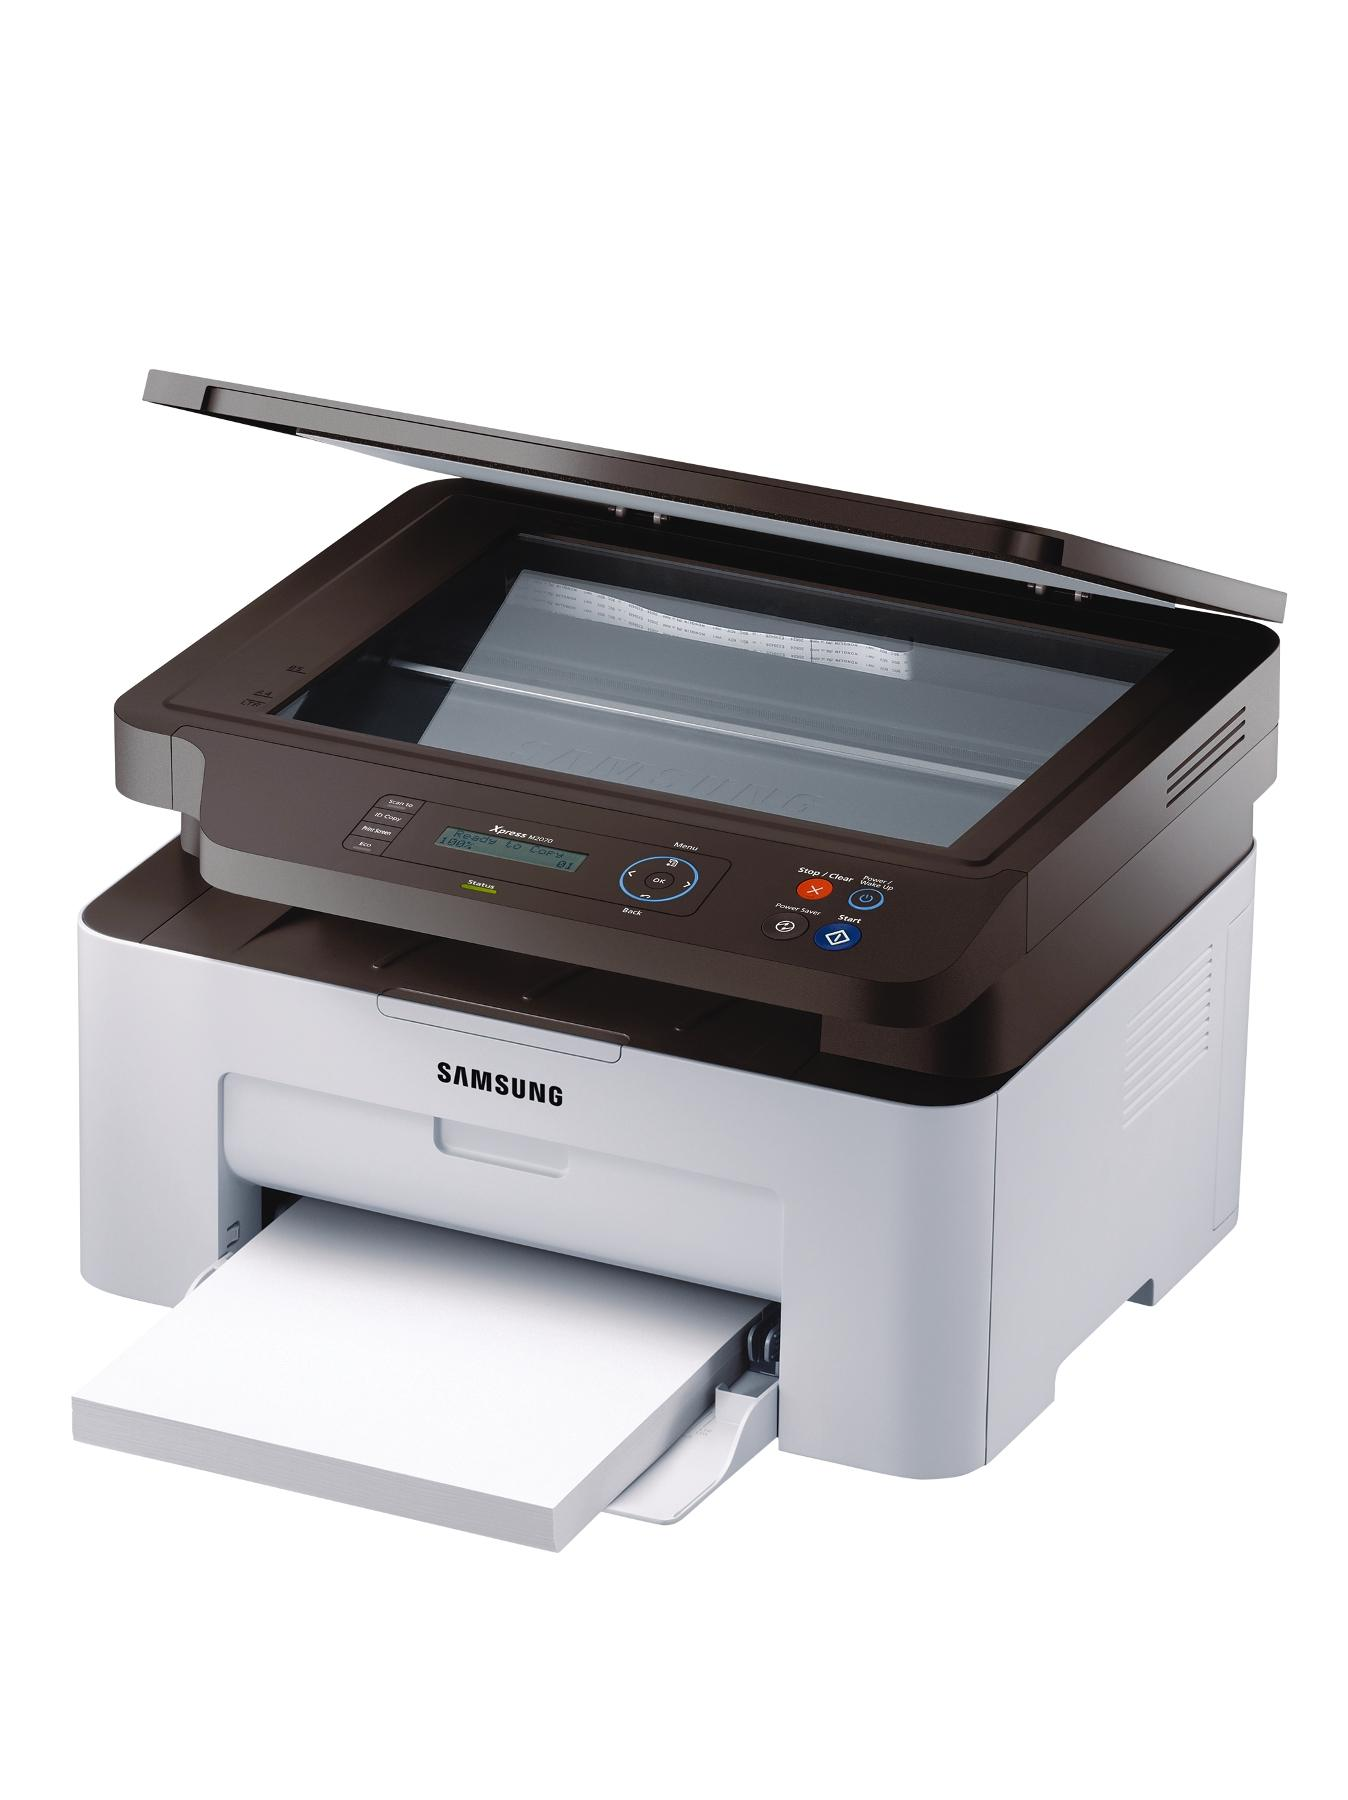 SL-M2070W/SEE Multifunction Printer Xpress